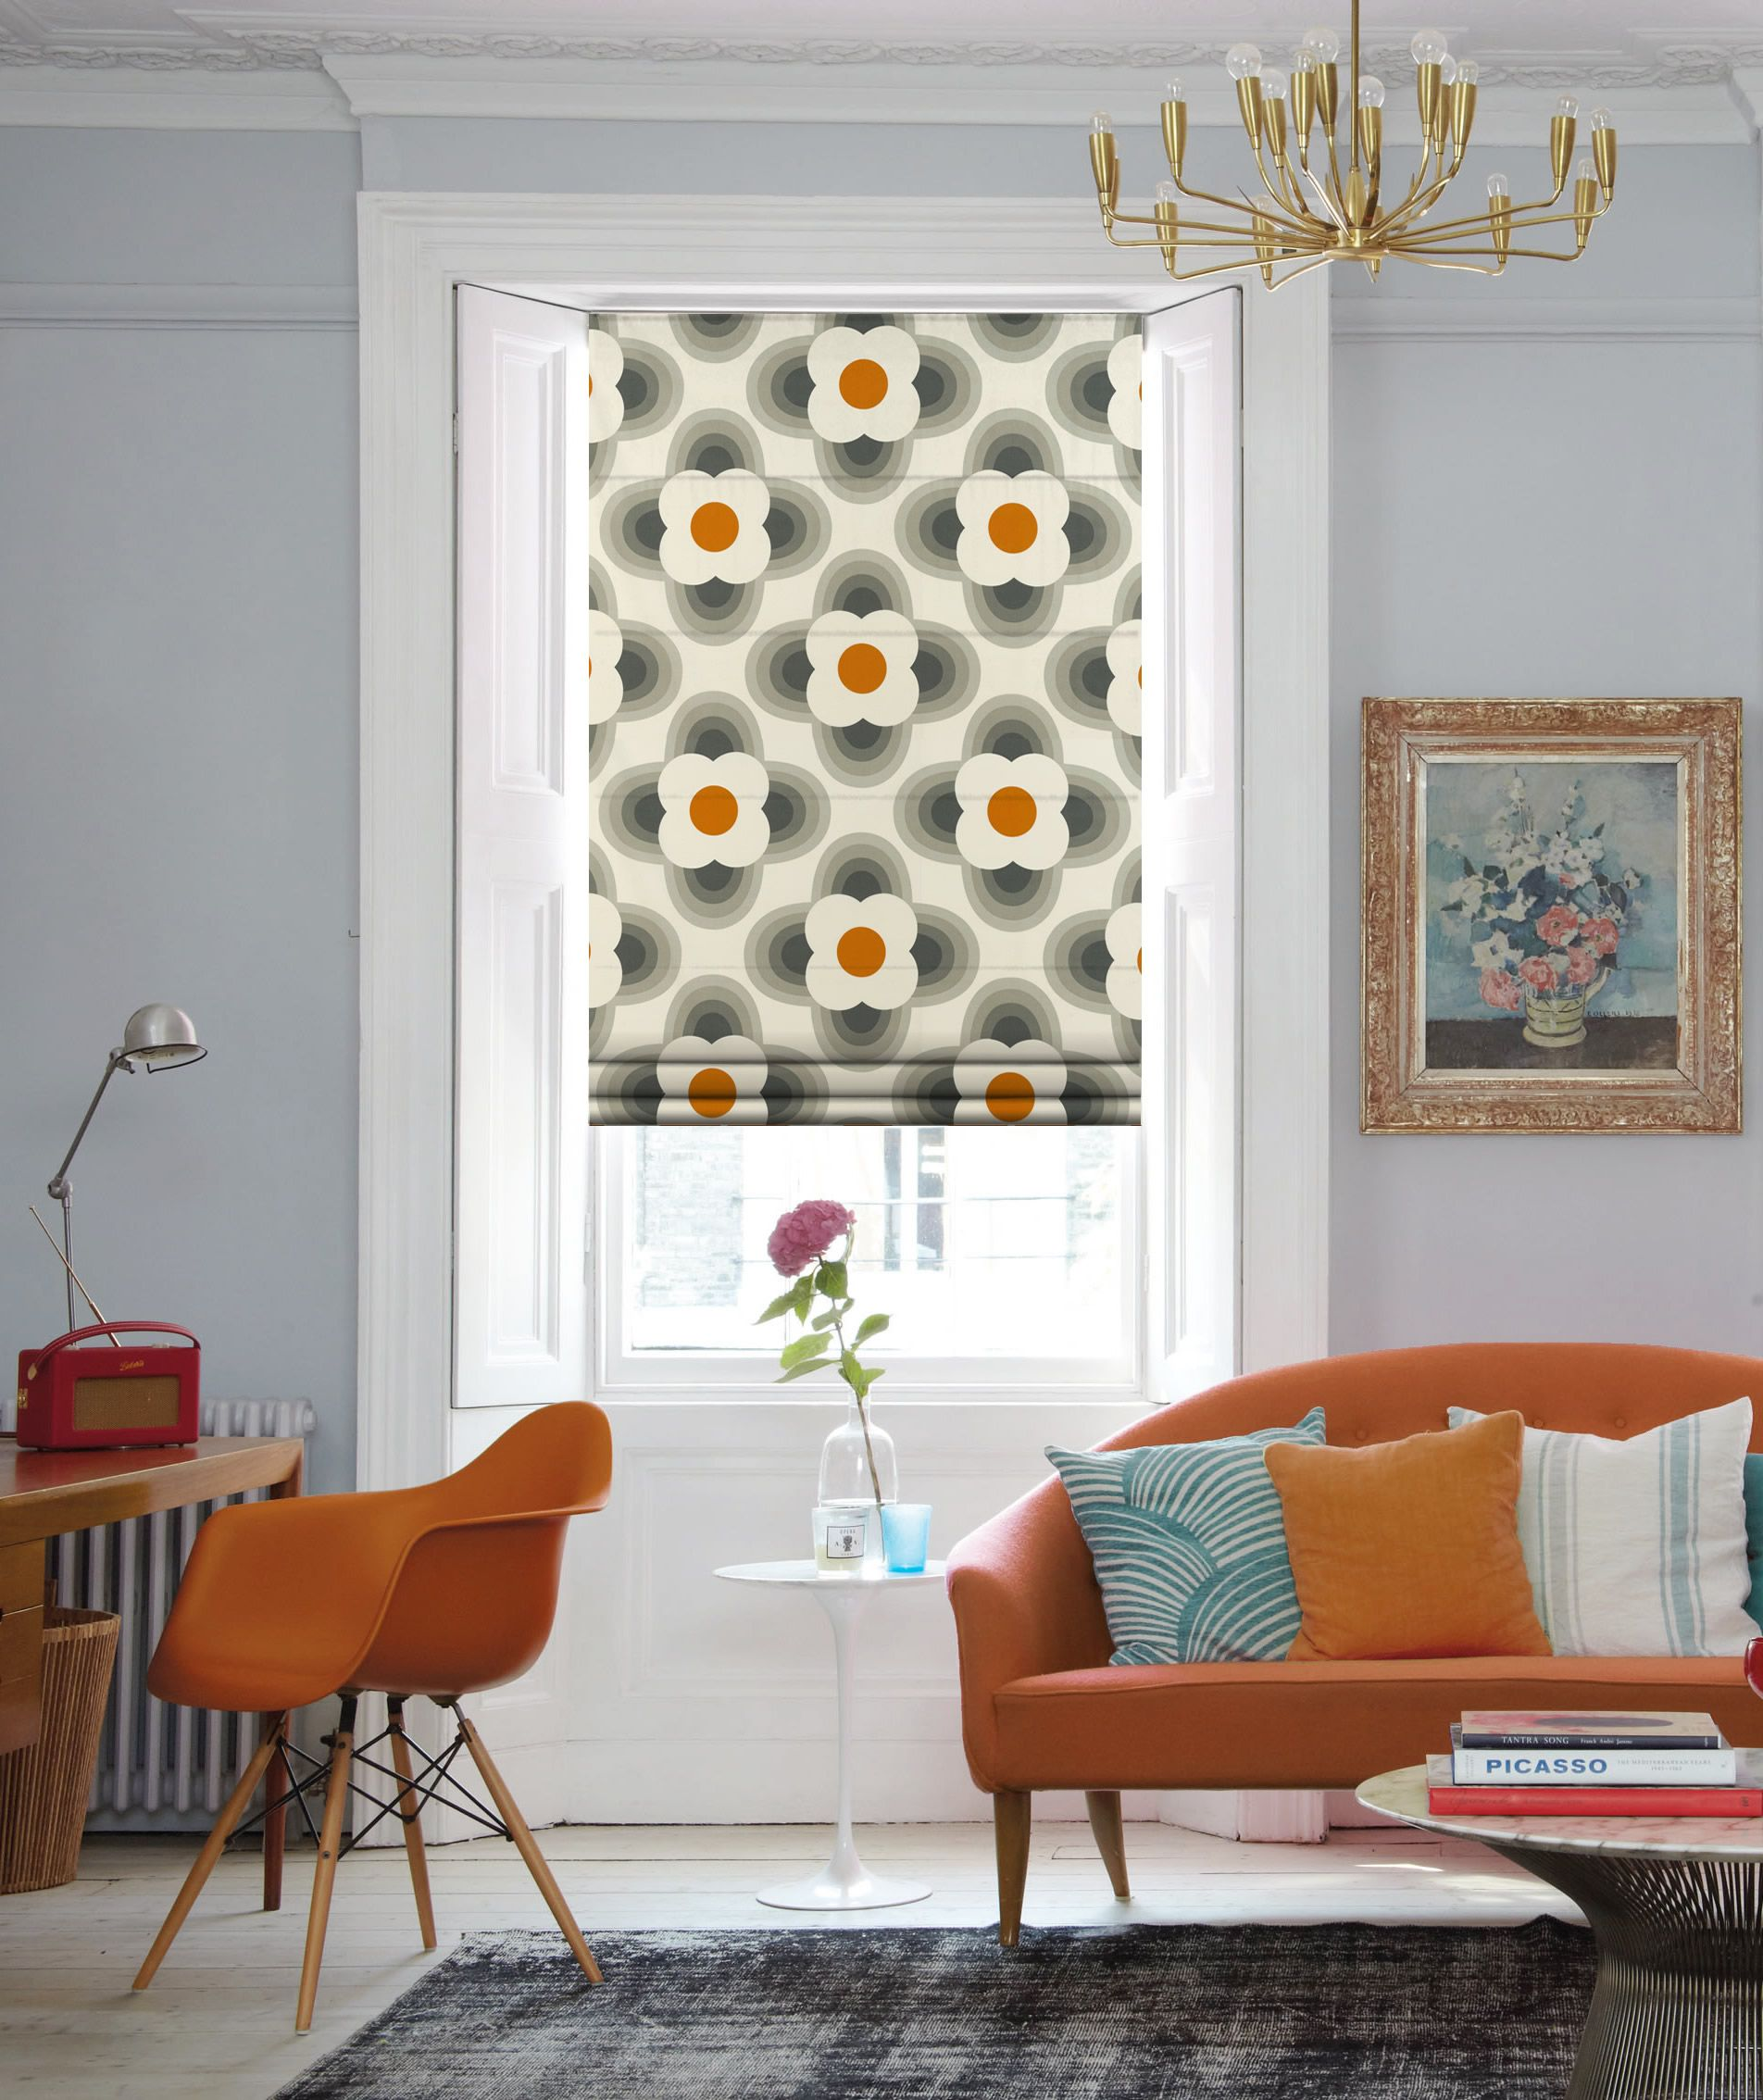 English Blinds Orla Kiely Striped Petal Orange Roman Blinds From £68.45